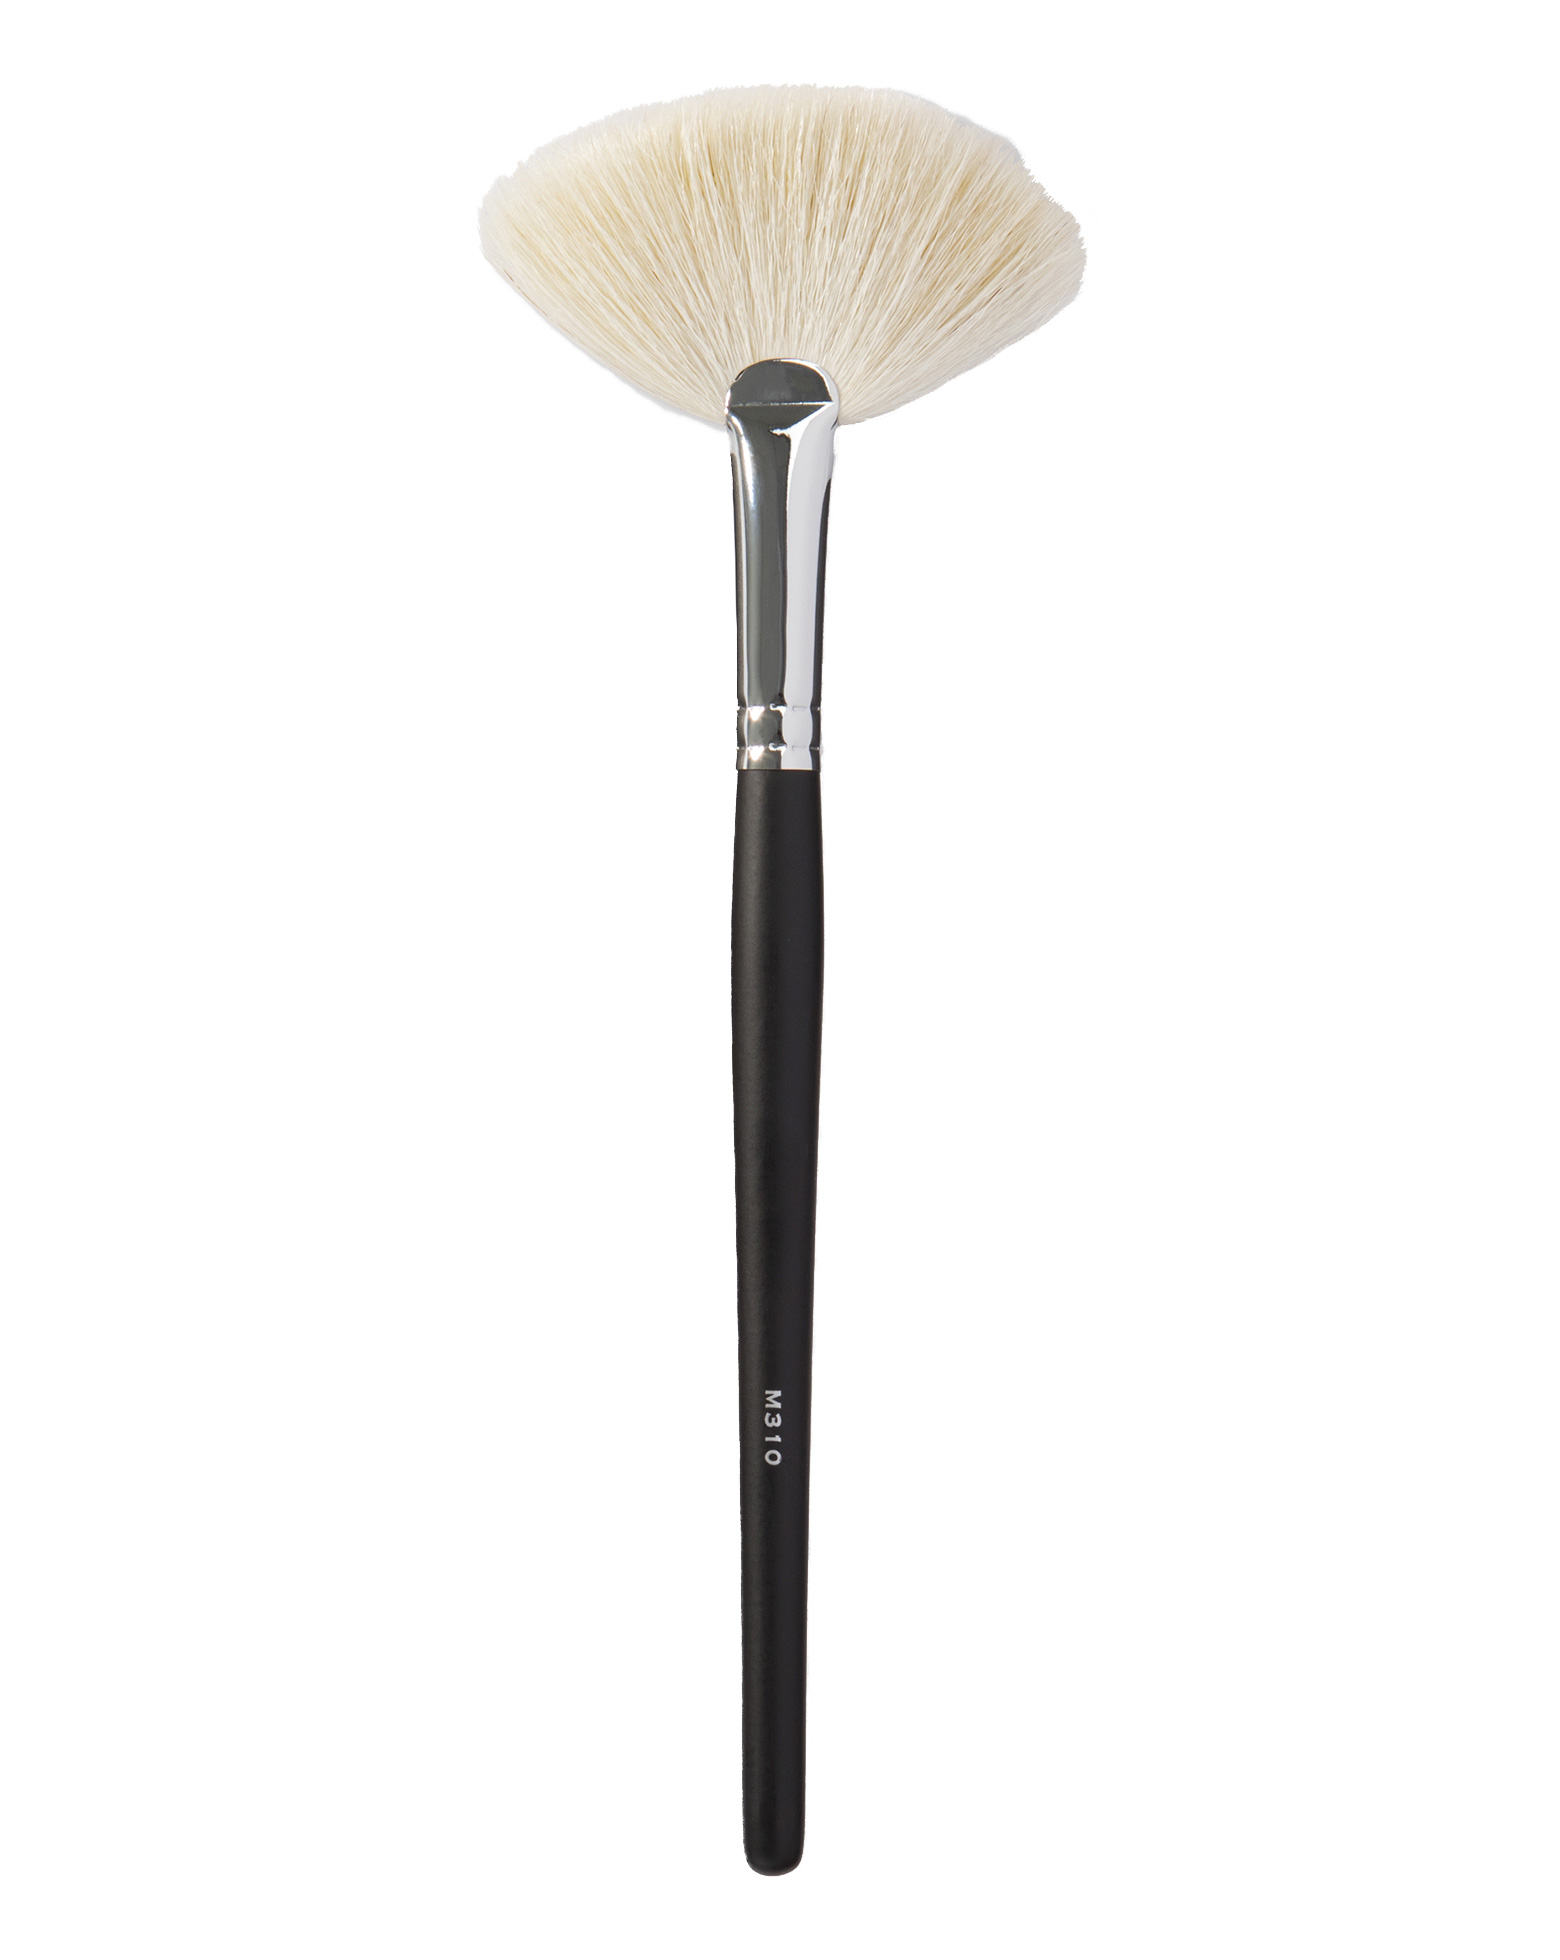 Morphe | Pro Large Soft Fan Brush (M310) | Cult Beauty